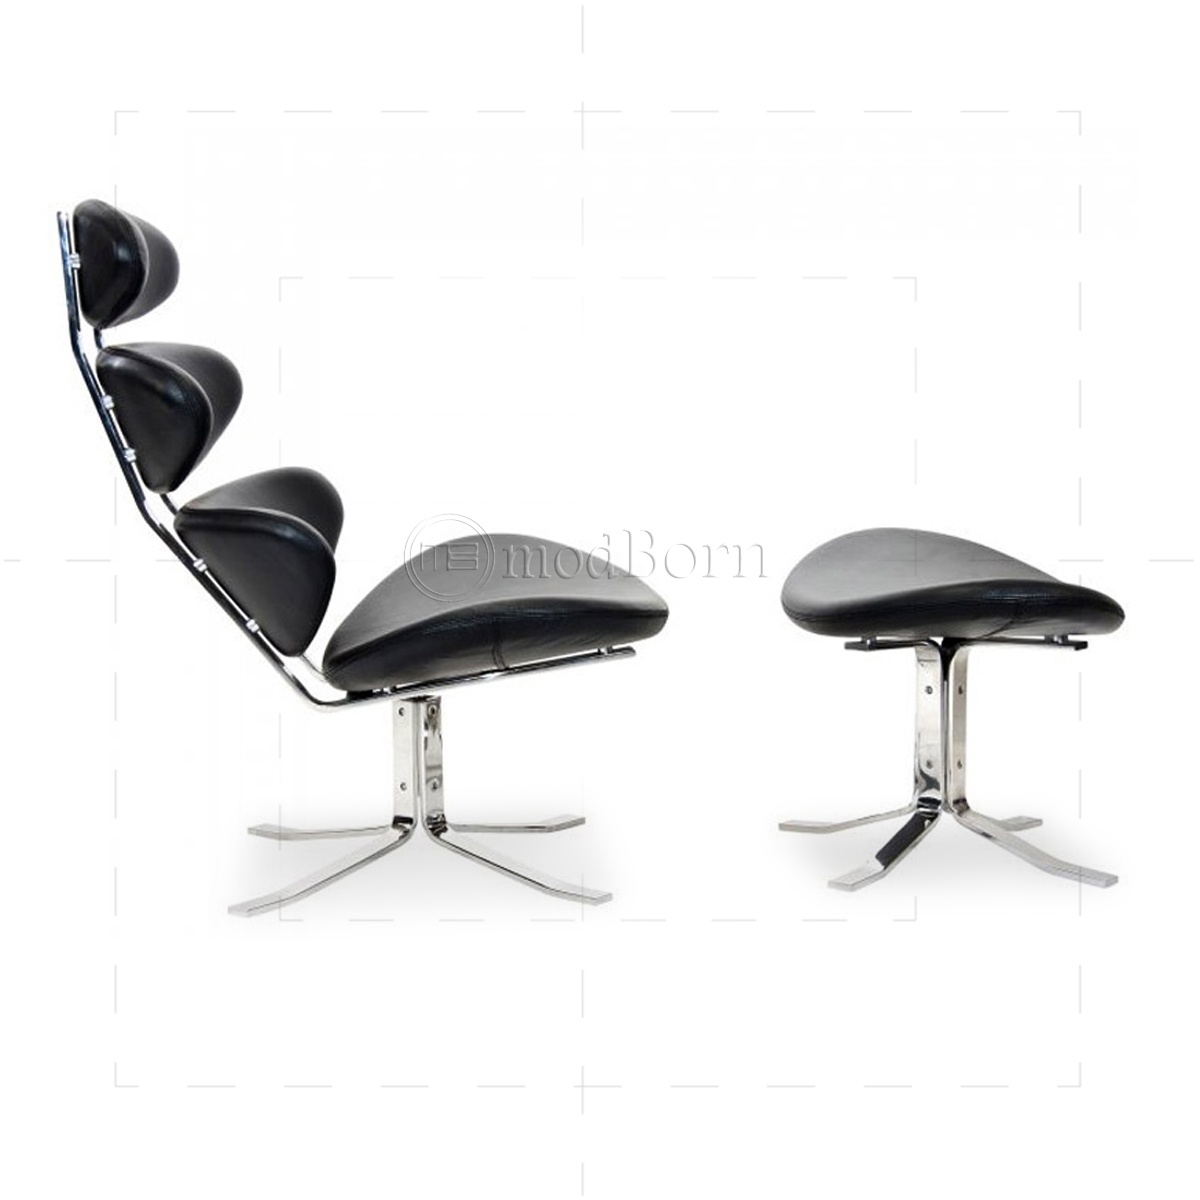 Poul m volther style corona chair and ottoman - Corona chair replica ...